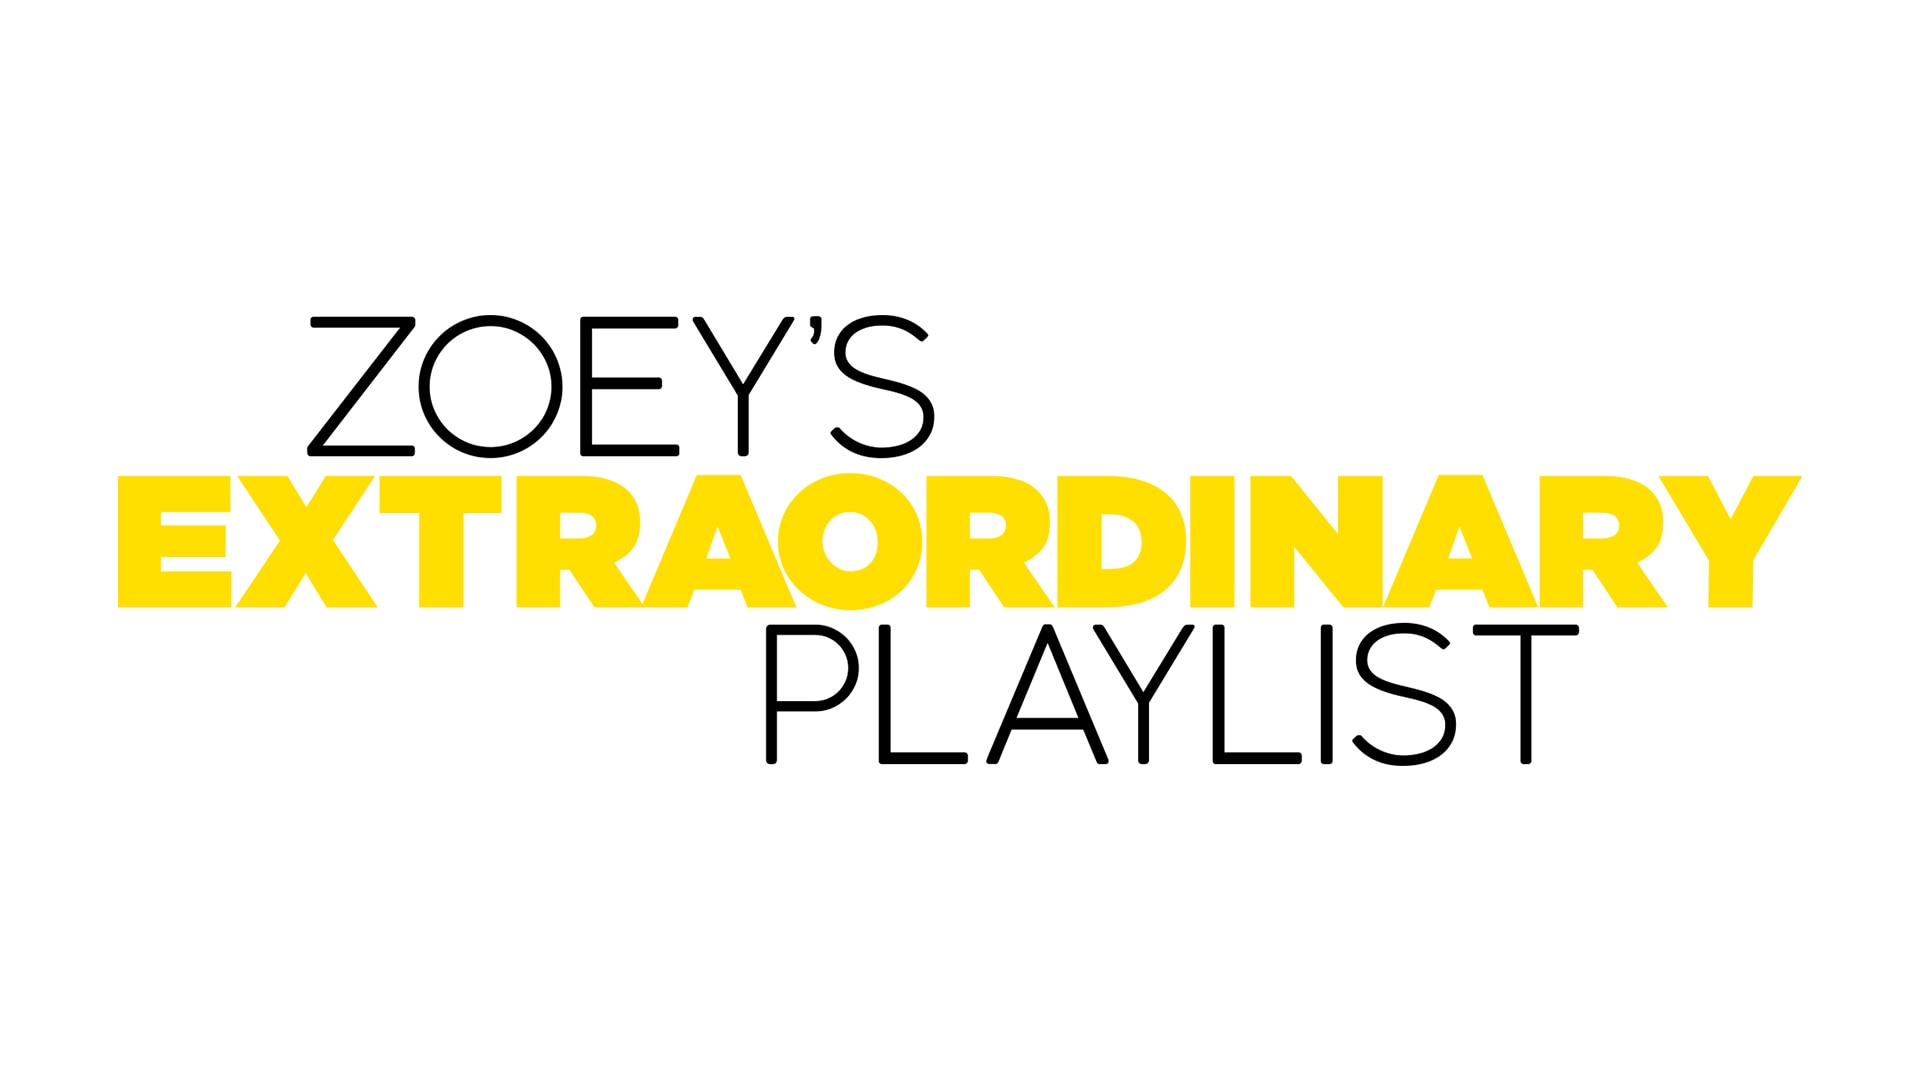 Zoey's Extraordinary Playlist on FREECABLE TV